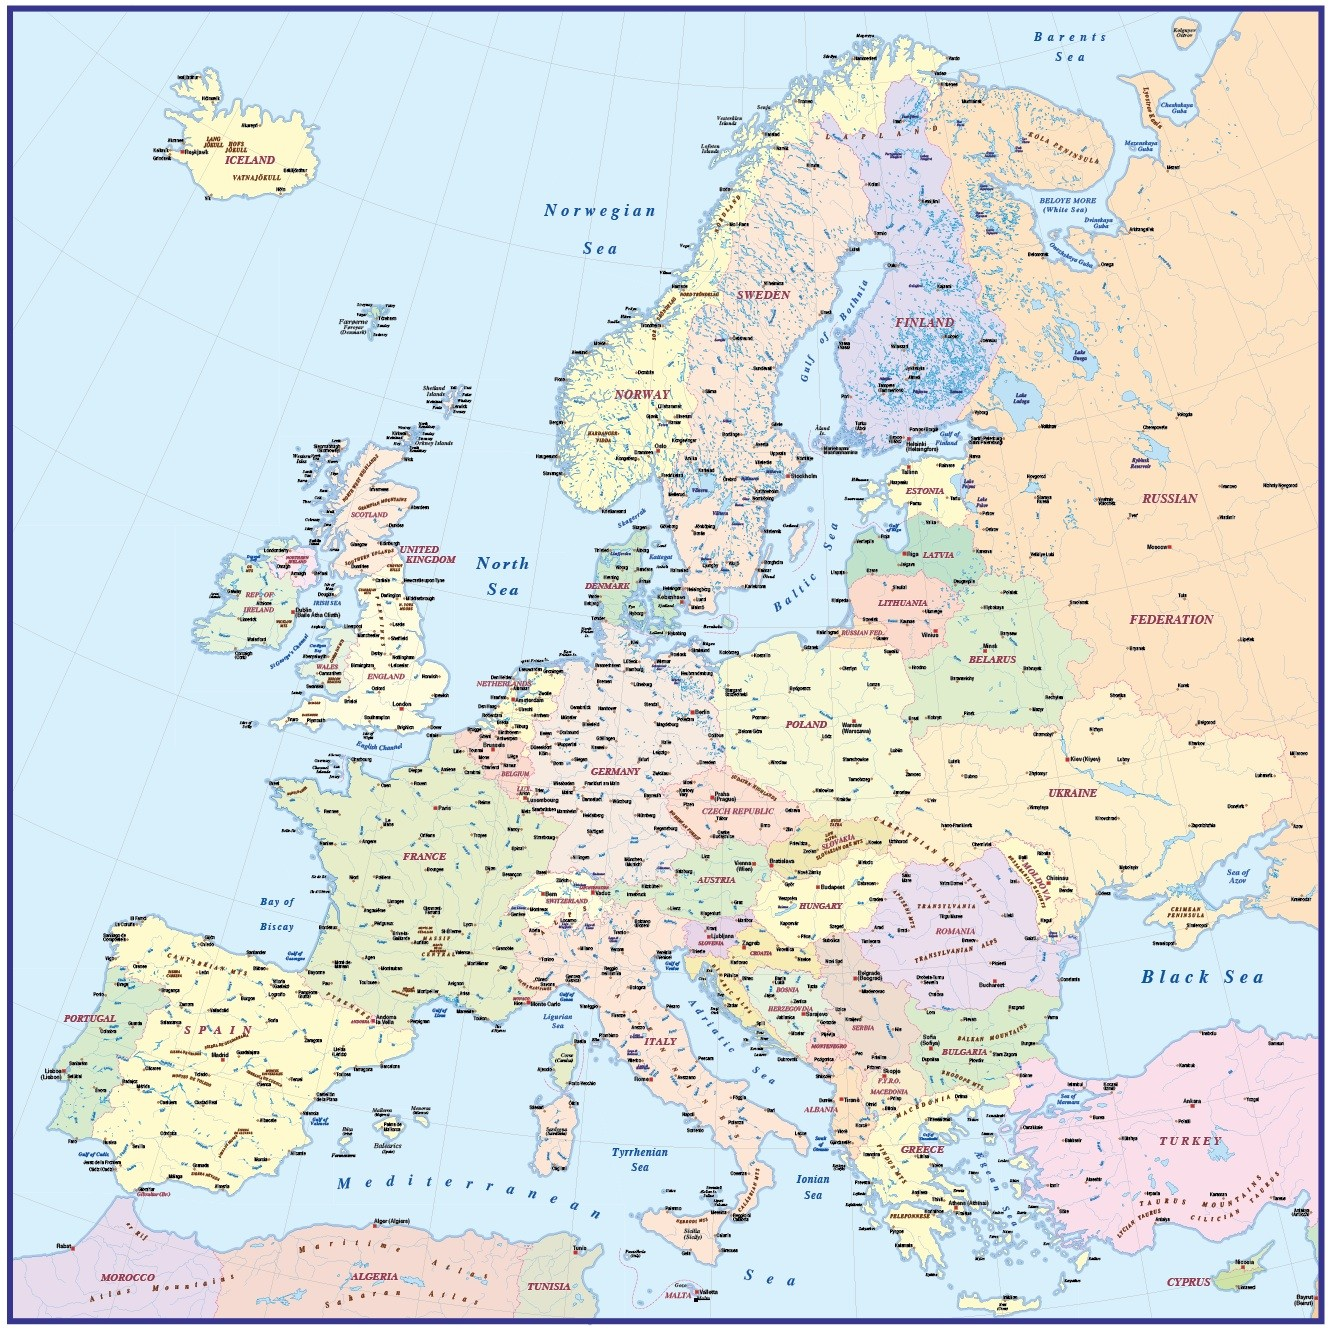 Map Of Europe With Scale.4m Scale Europe Political Basic Map In Illustrator And Pdf Formats